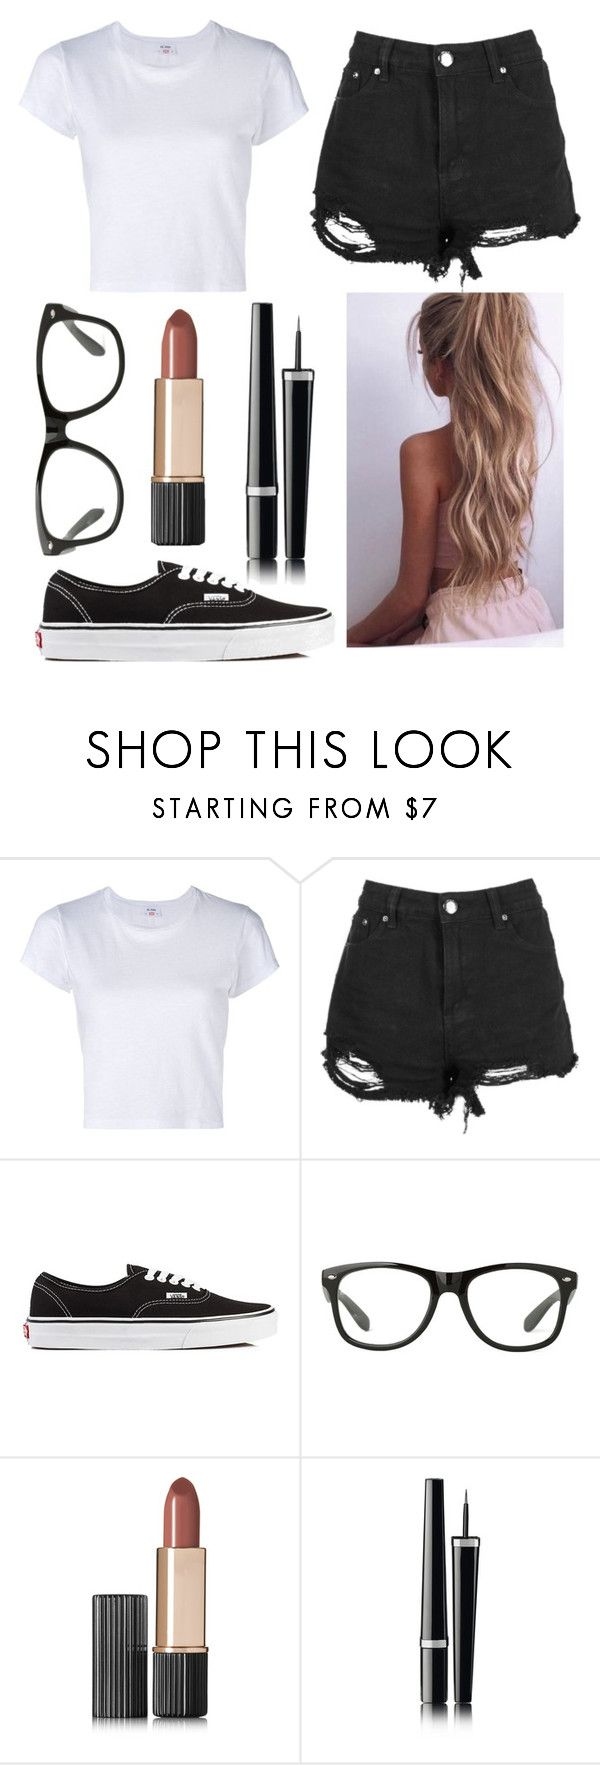 """""""Outfit #33"""" by unicornicamitha on Polyvore featuring RE/DONE, Boohoo, Vans, Estée Lauder and Chanel"""